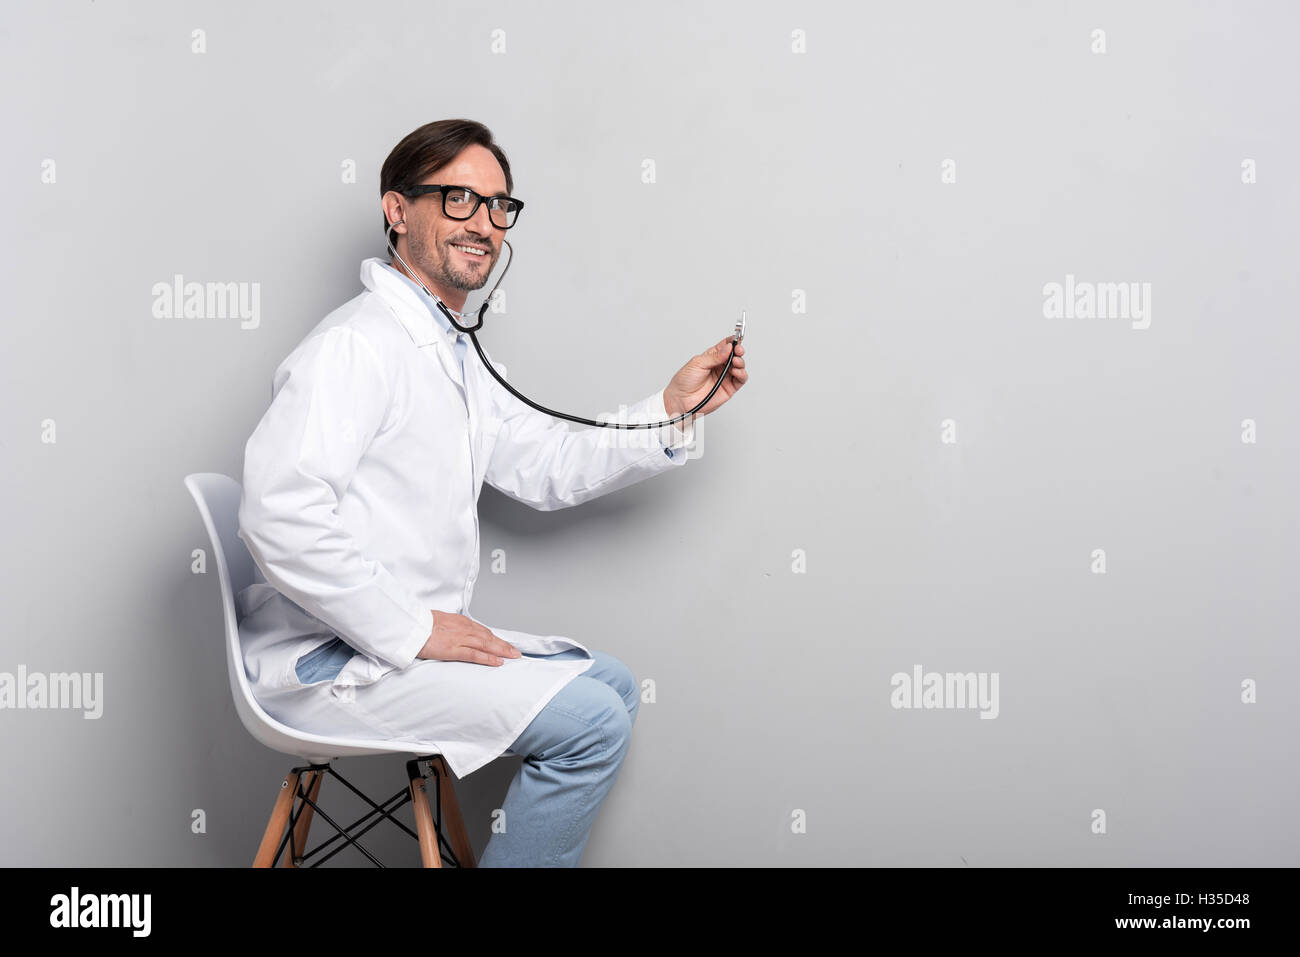 Young doctor with stethoscope on a grey background - Stock Image